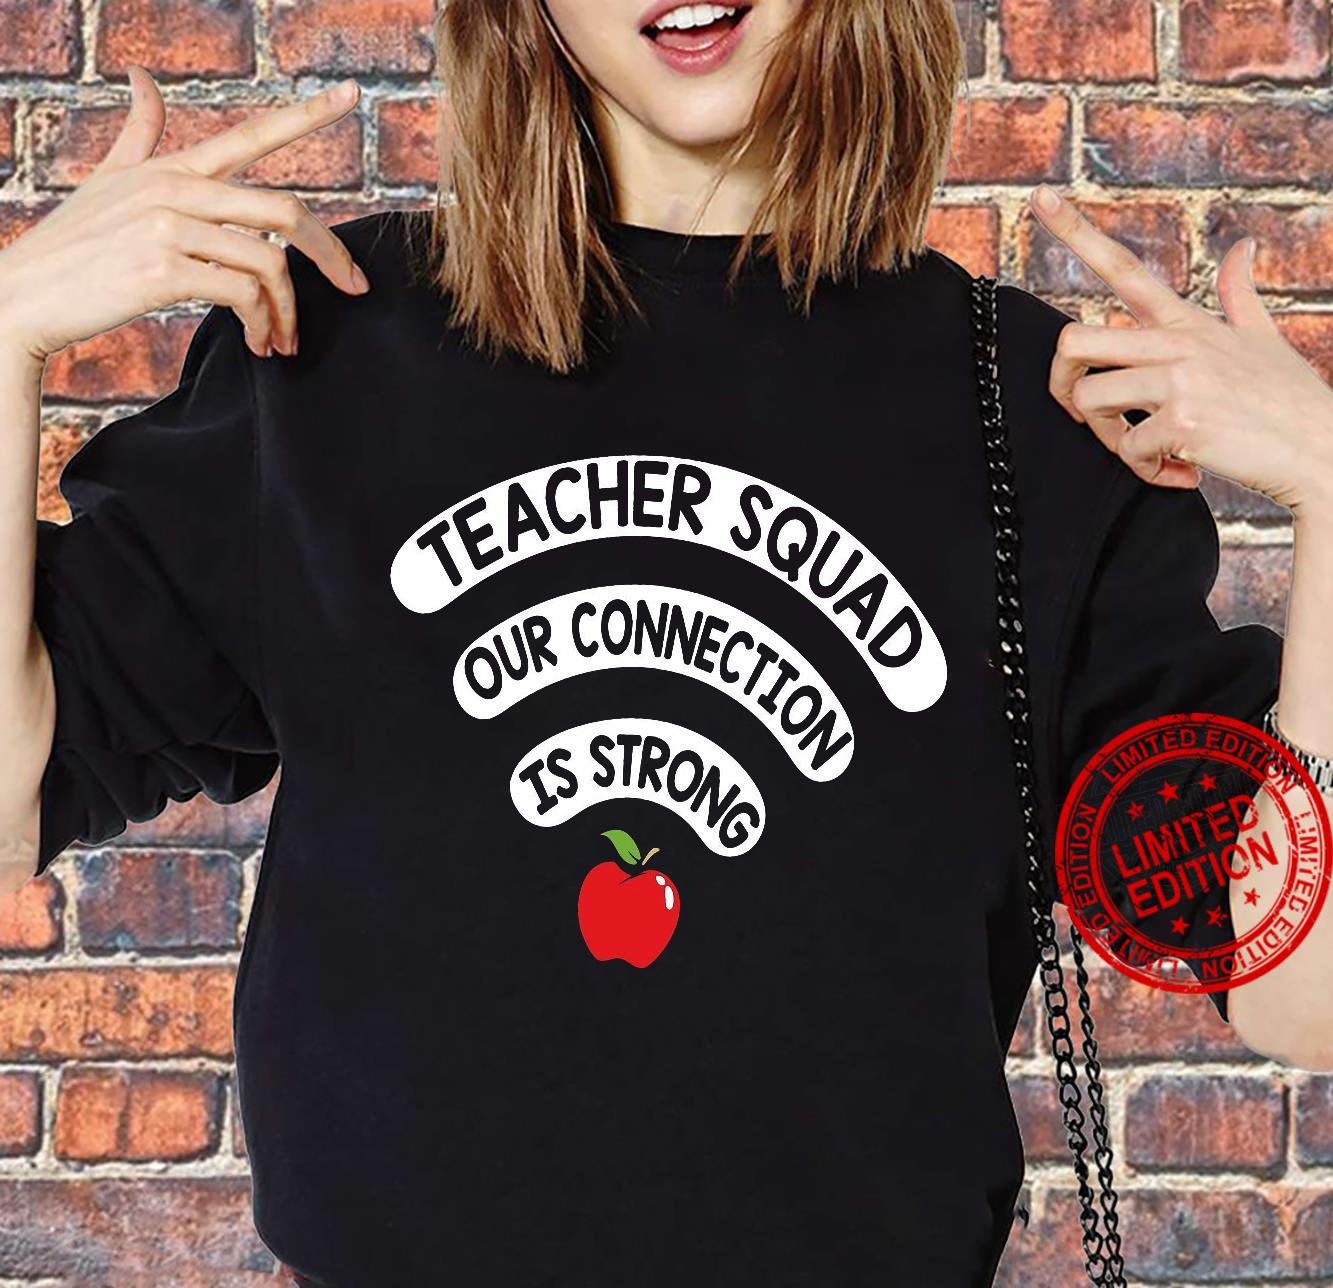 Teacher Squad Our Connection Is Strong Shirt sweater